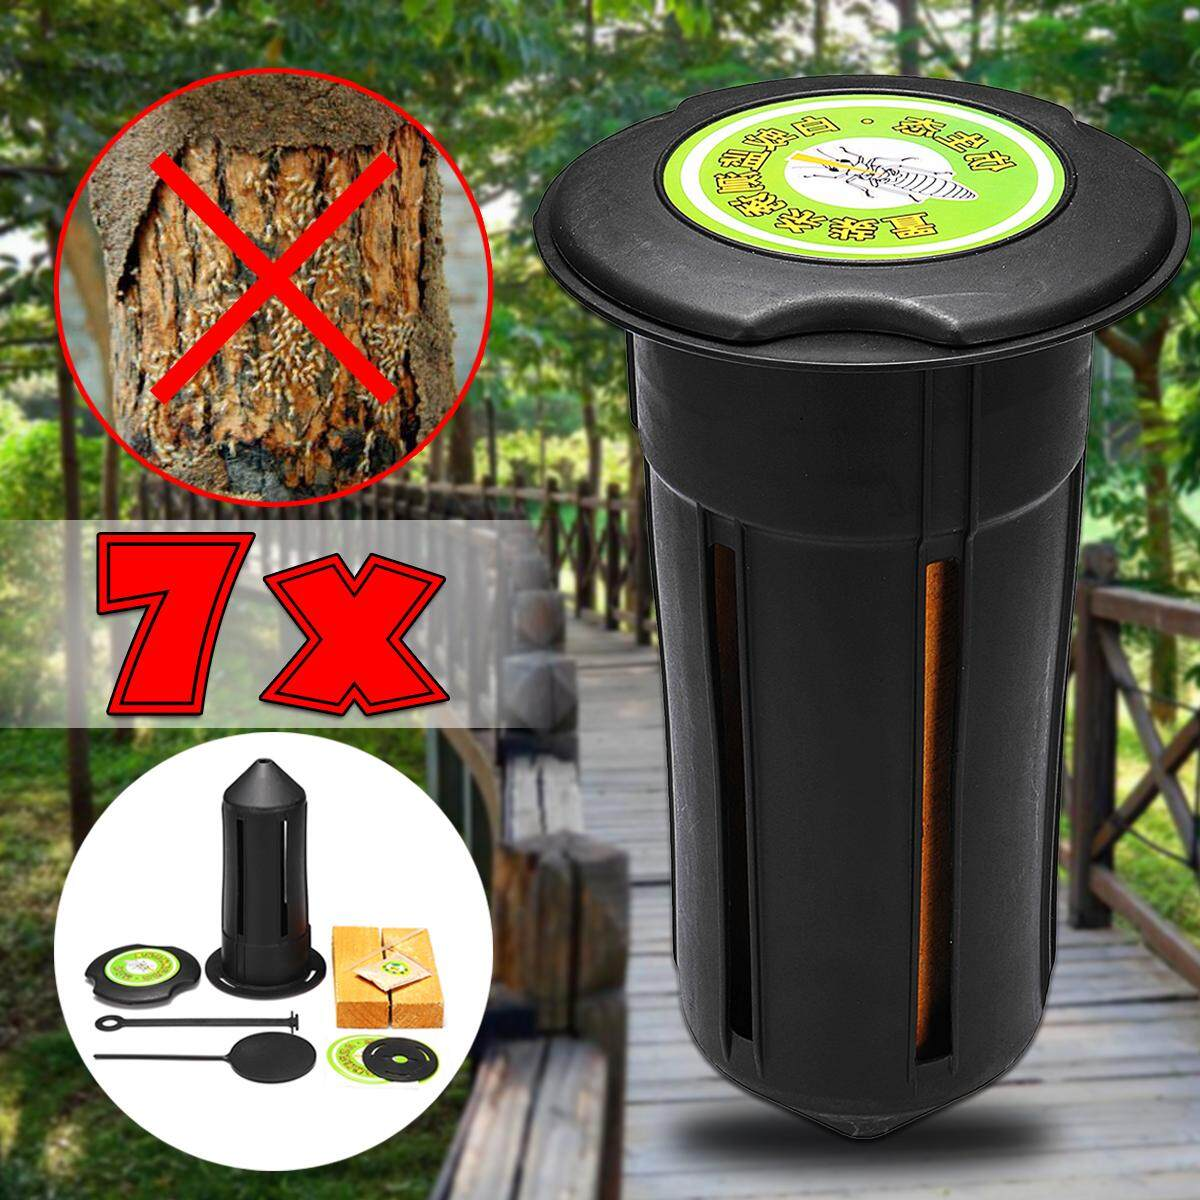 【Free Shipping + Flash Deal】7X Termite Control Bait & Monitoring Station System Monitor Underground Trap Box